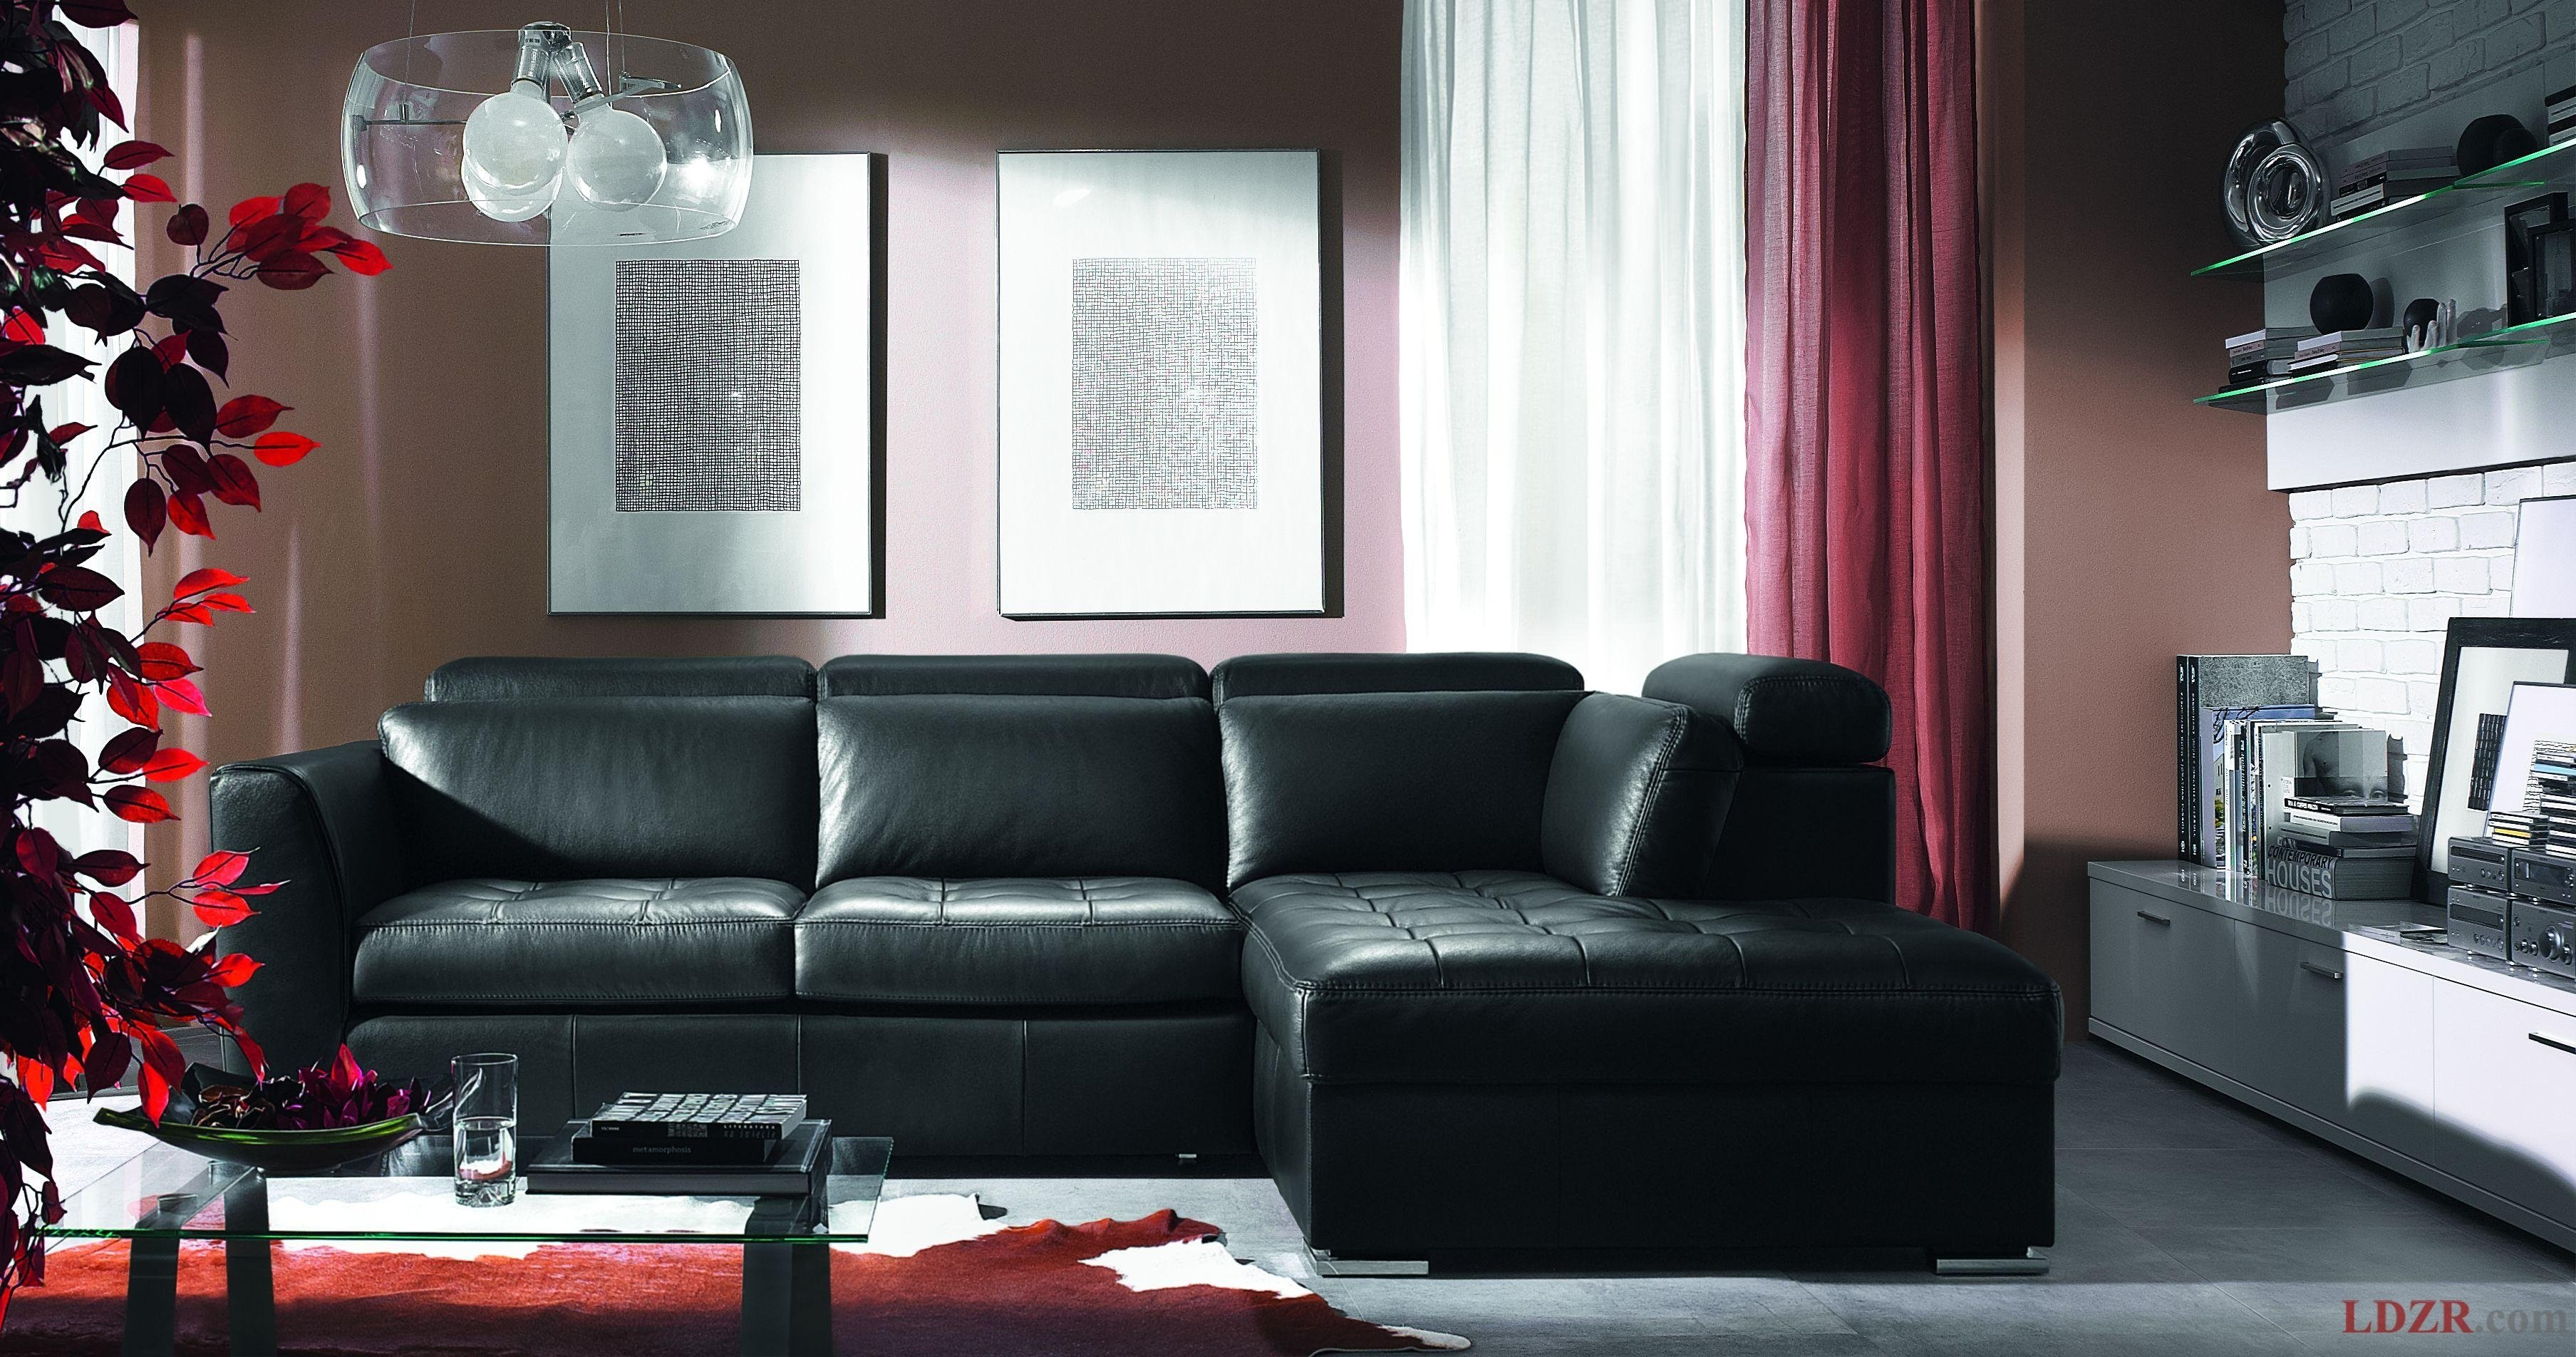 10 Fashionable Black Couch Living Room Ideas black couch living room filonlinecommunity info with sofa for photo